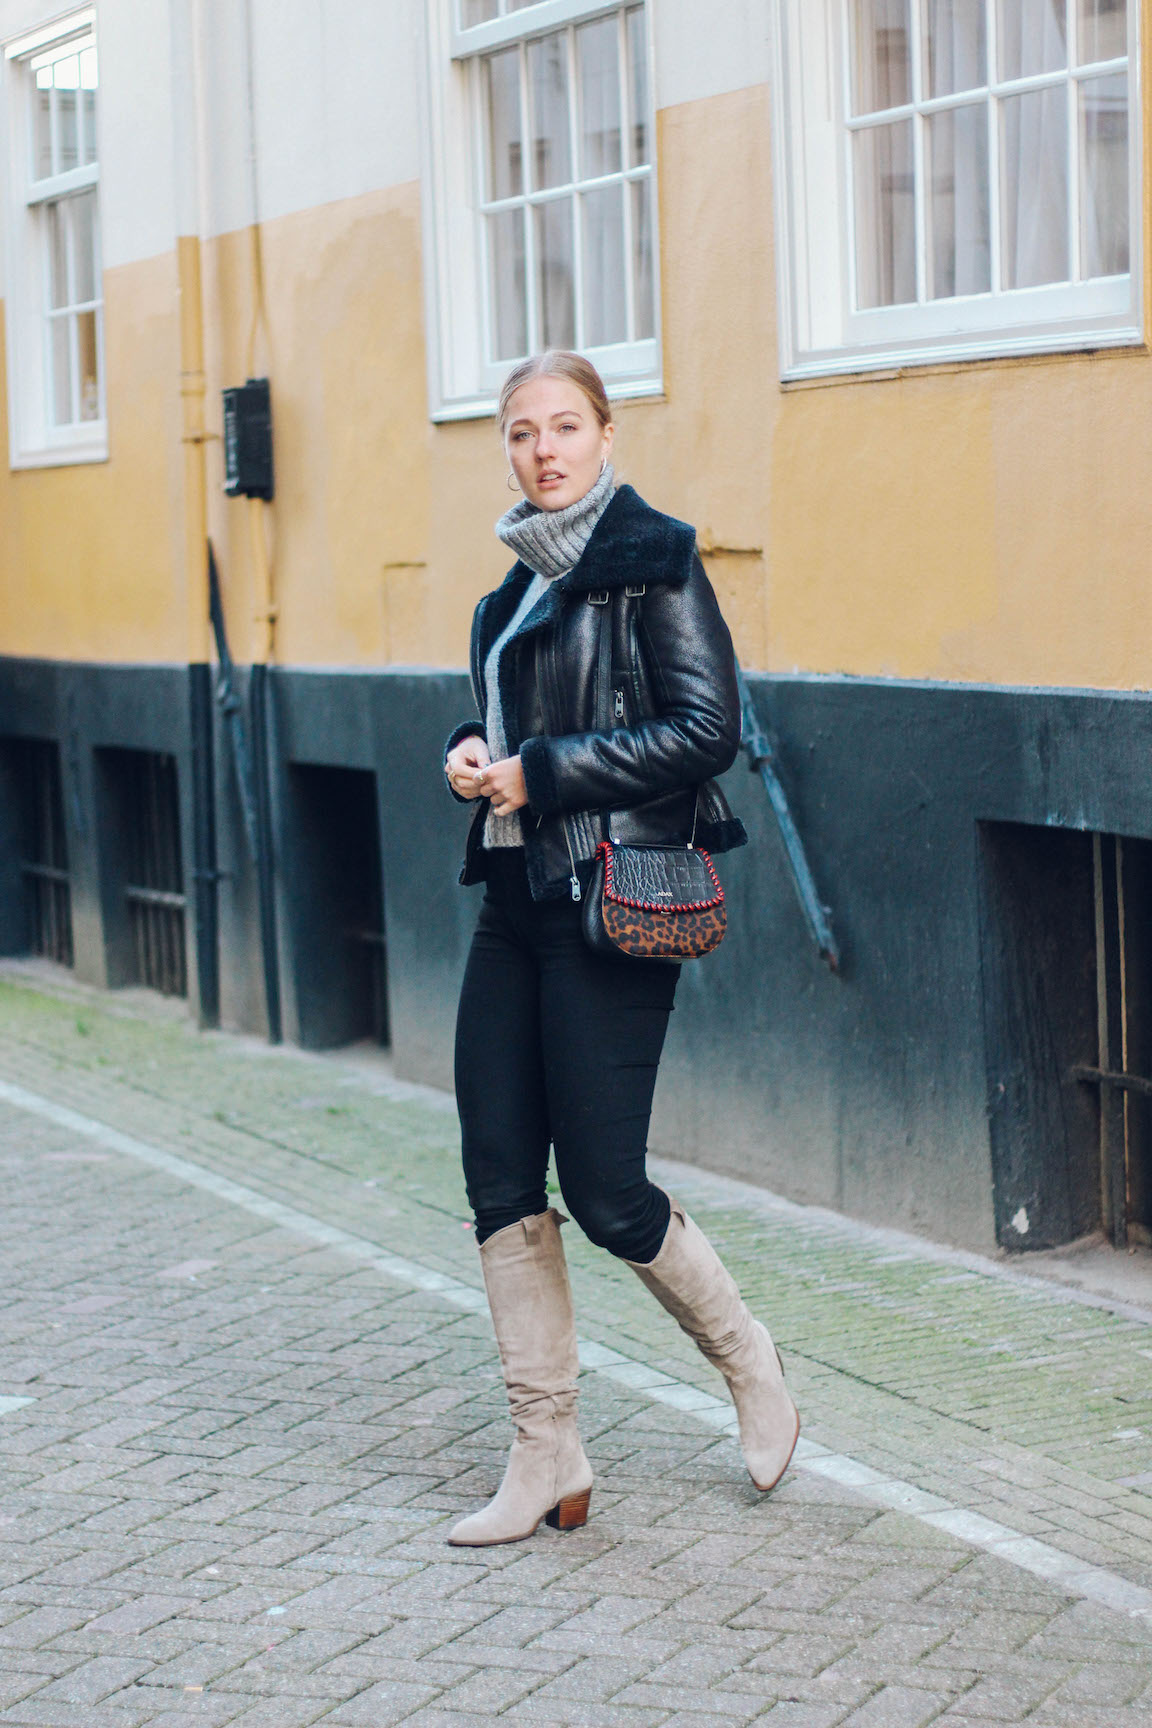 Floortjeloves, 5 ways, ways to, 5 ways to spend less on clothes, money, budget, budgeting, spending, spend less, saving, comma, 7 for all mankind, nubikk, 7fam, adax, lemmycoat, lemmy coat, turtleneck, skinny, weekend, cowboy boots